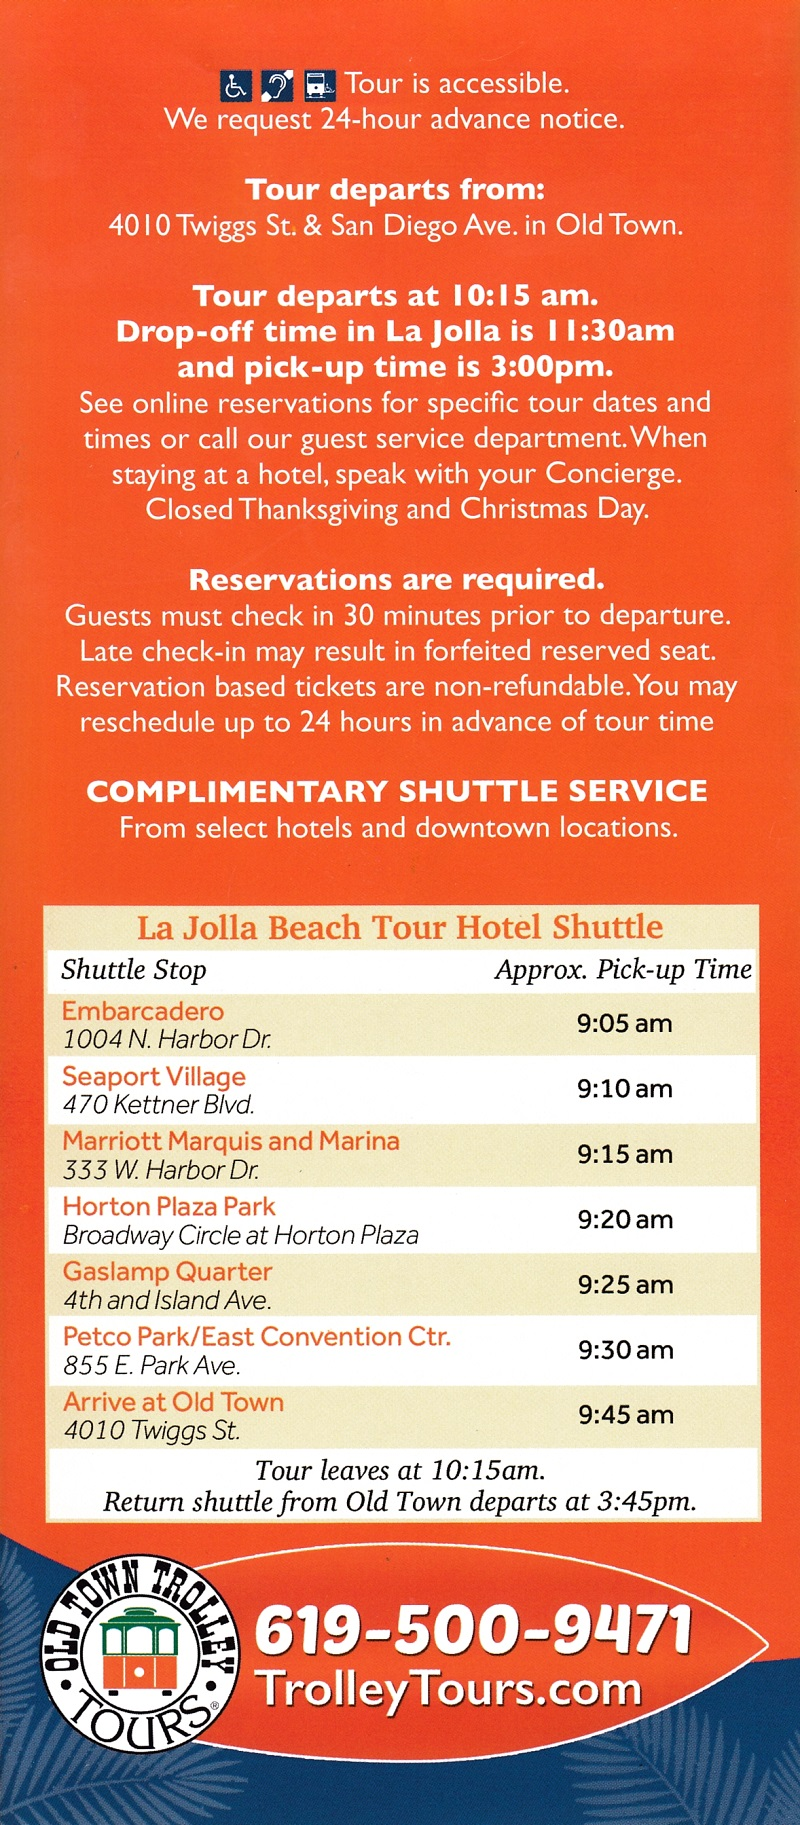 Old Town Trolley - Beach Tour brochure full size